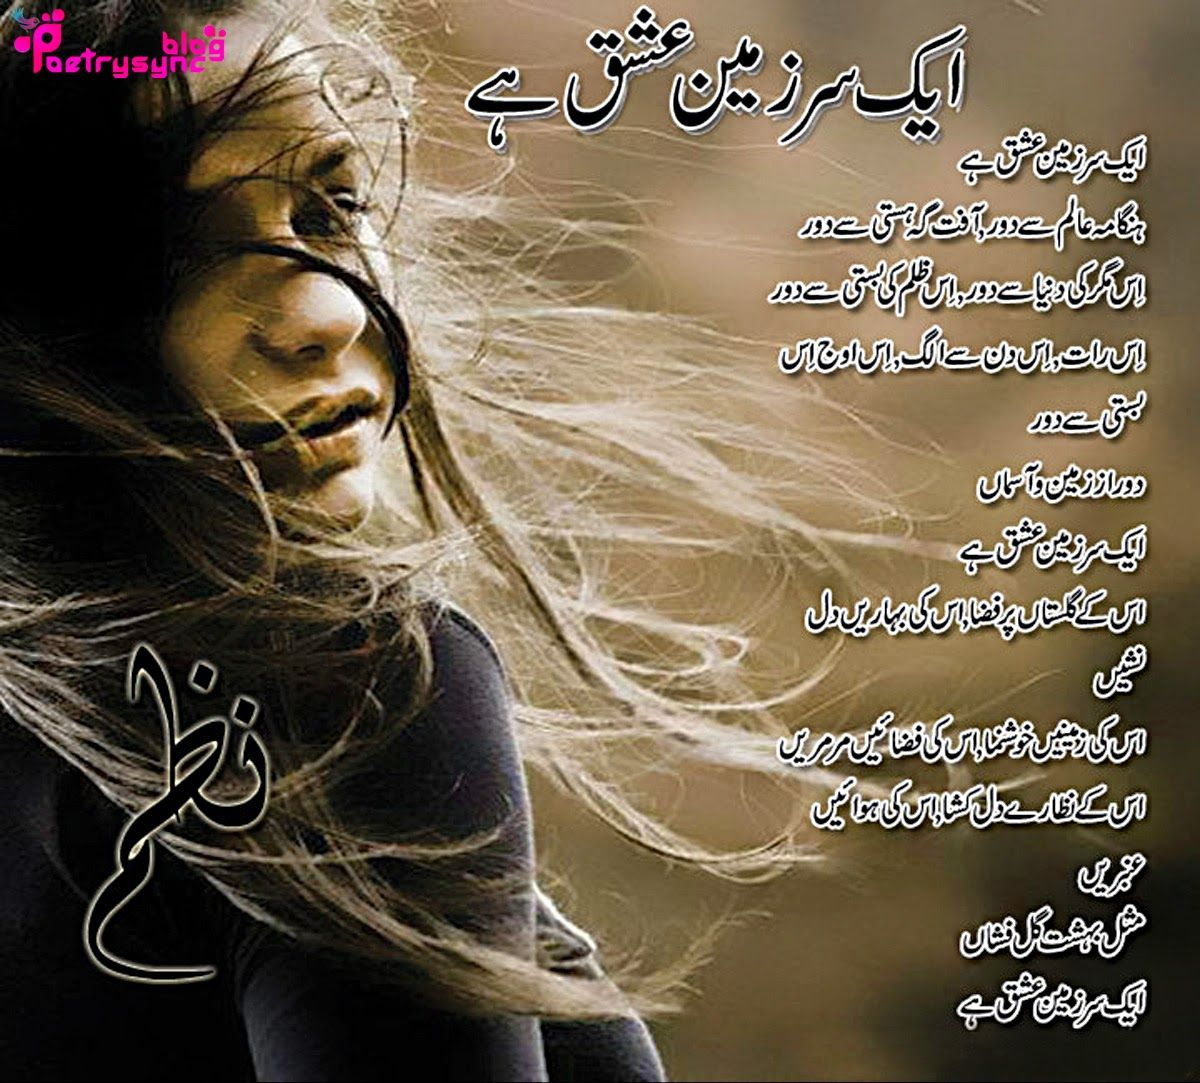 Poetry: Pyar, Ishq, Mohabbat Poetry/Shayari Wallpapers In